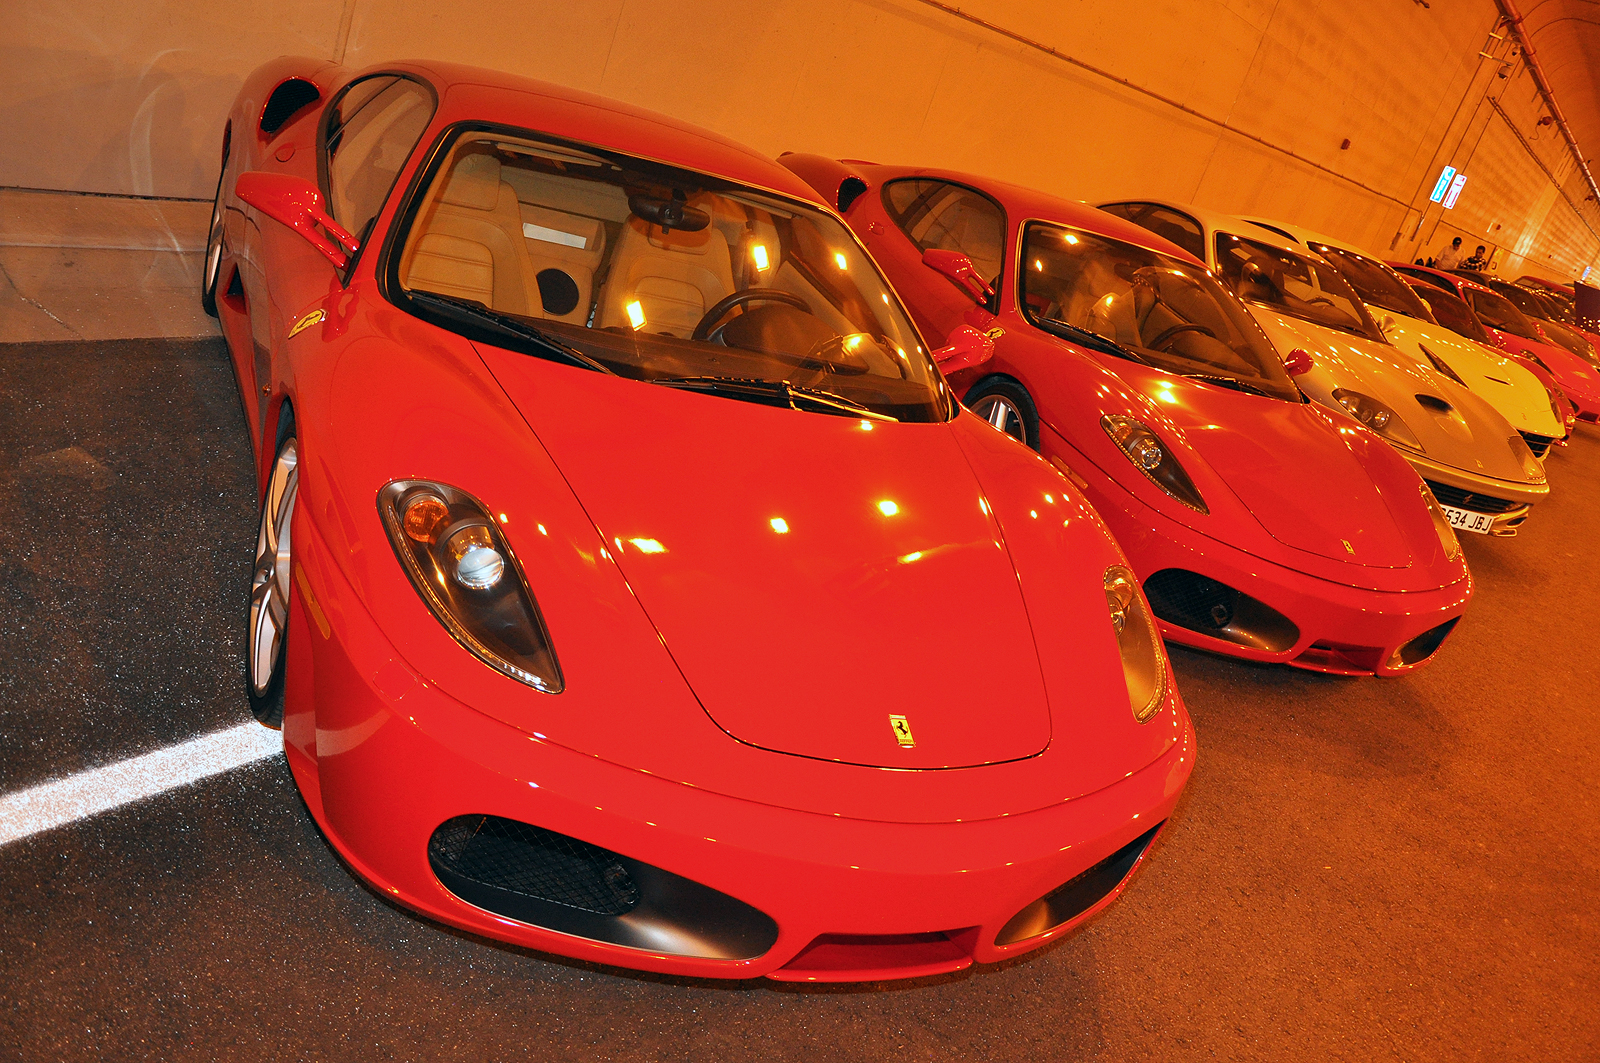 ferrari club of america alberta chapter at the calgary airport. Cars Review. Best American Auto & Cars Review